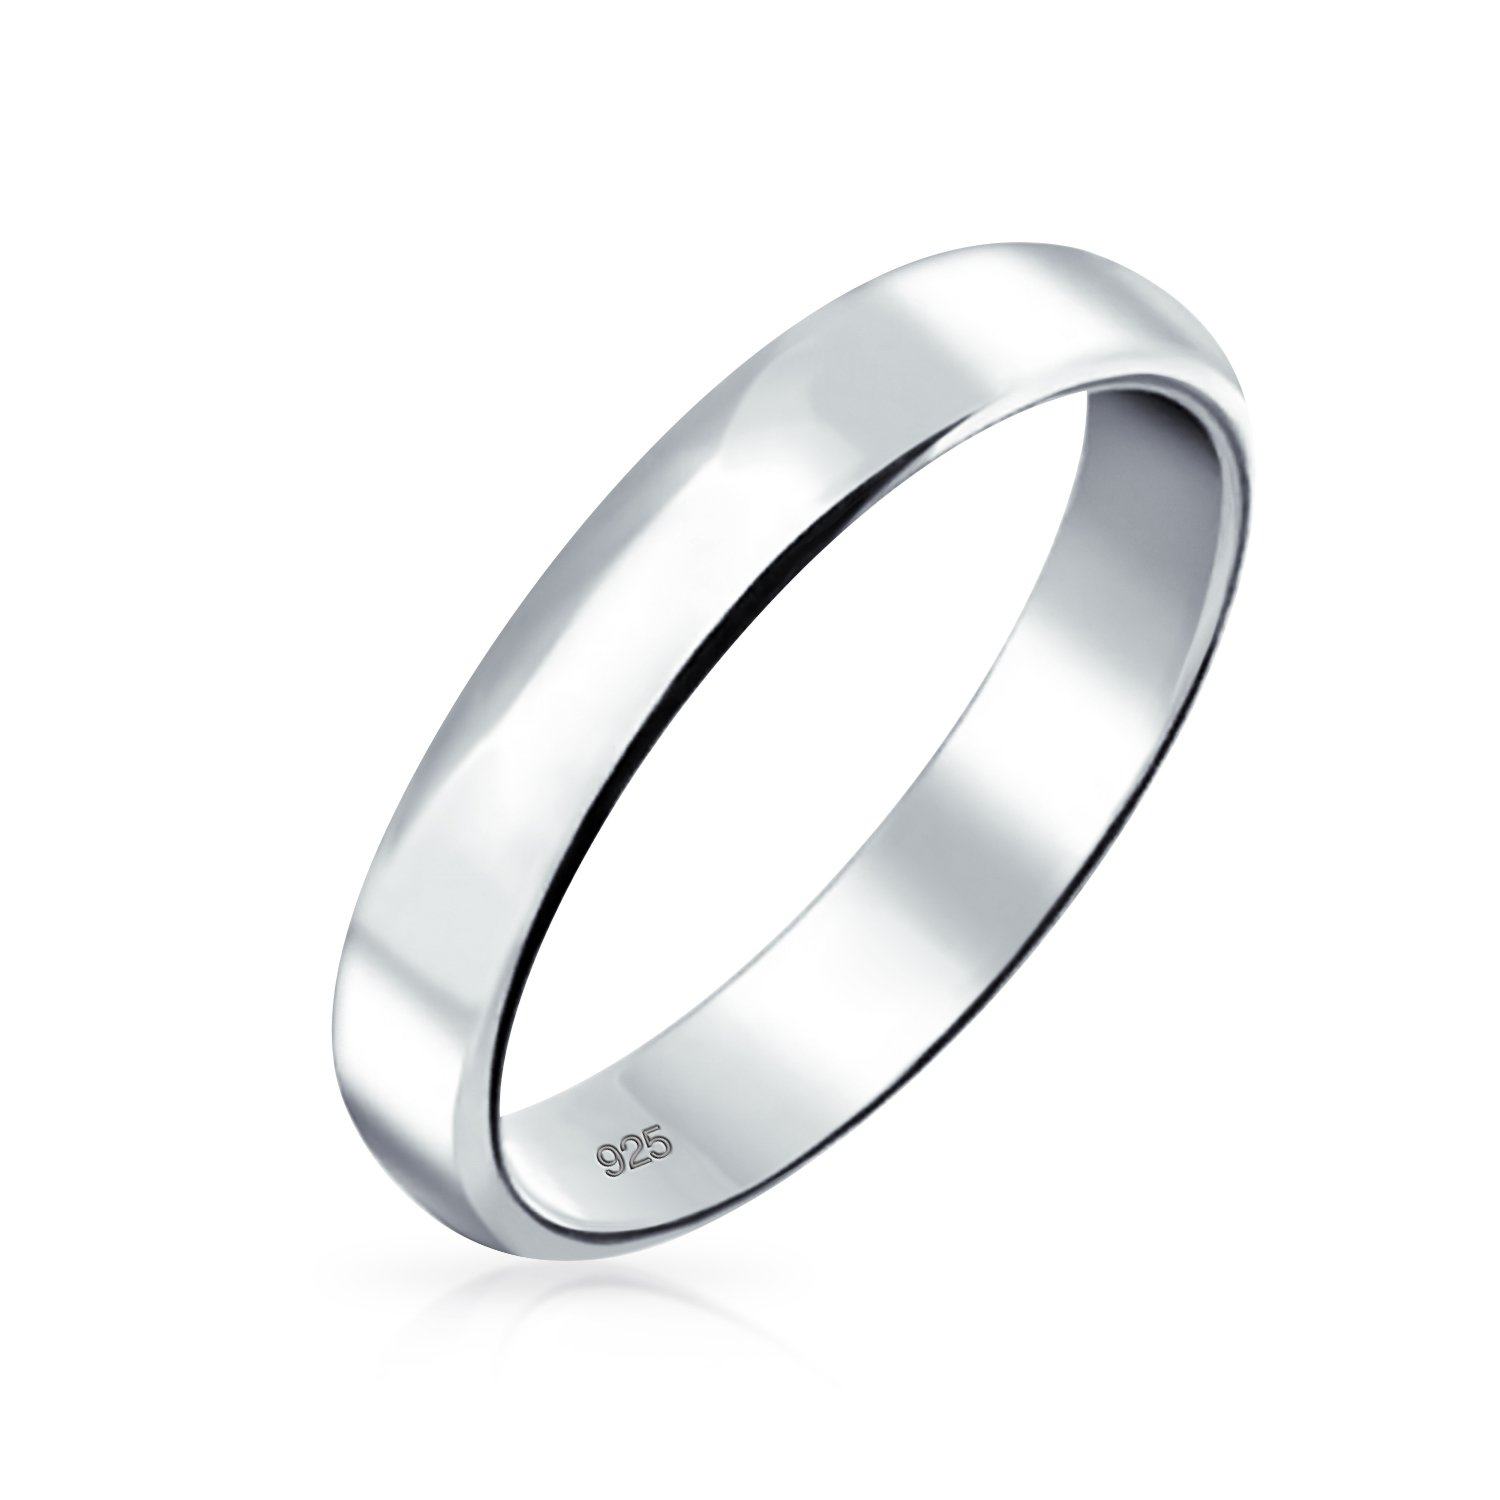 Minimalist Plain Simple 925 Sterling Silver Dome Couples Wedding Band Ring For Women For Men 4MM by Bling Jewelry